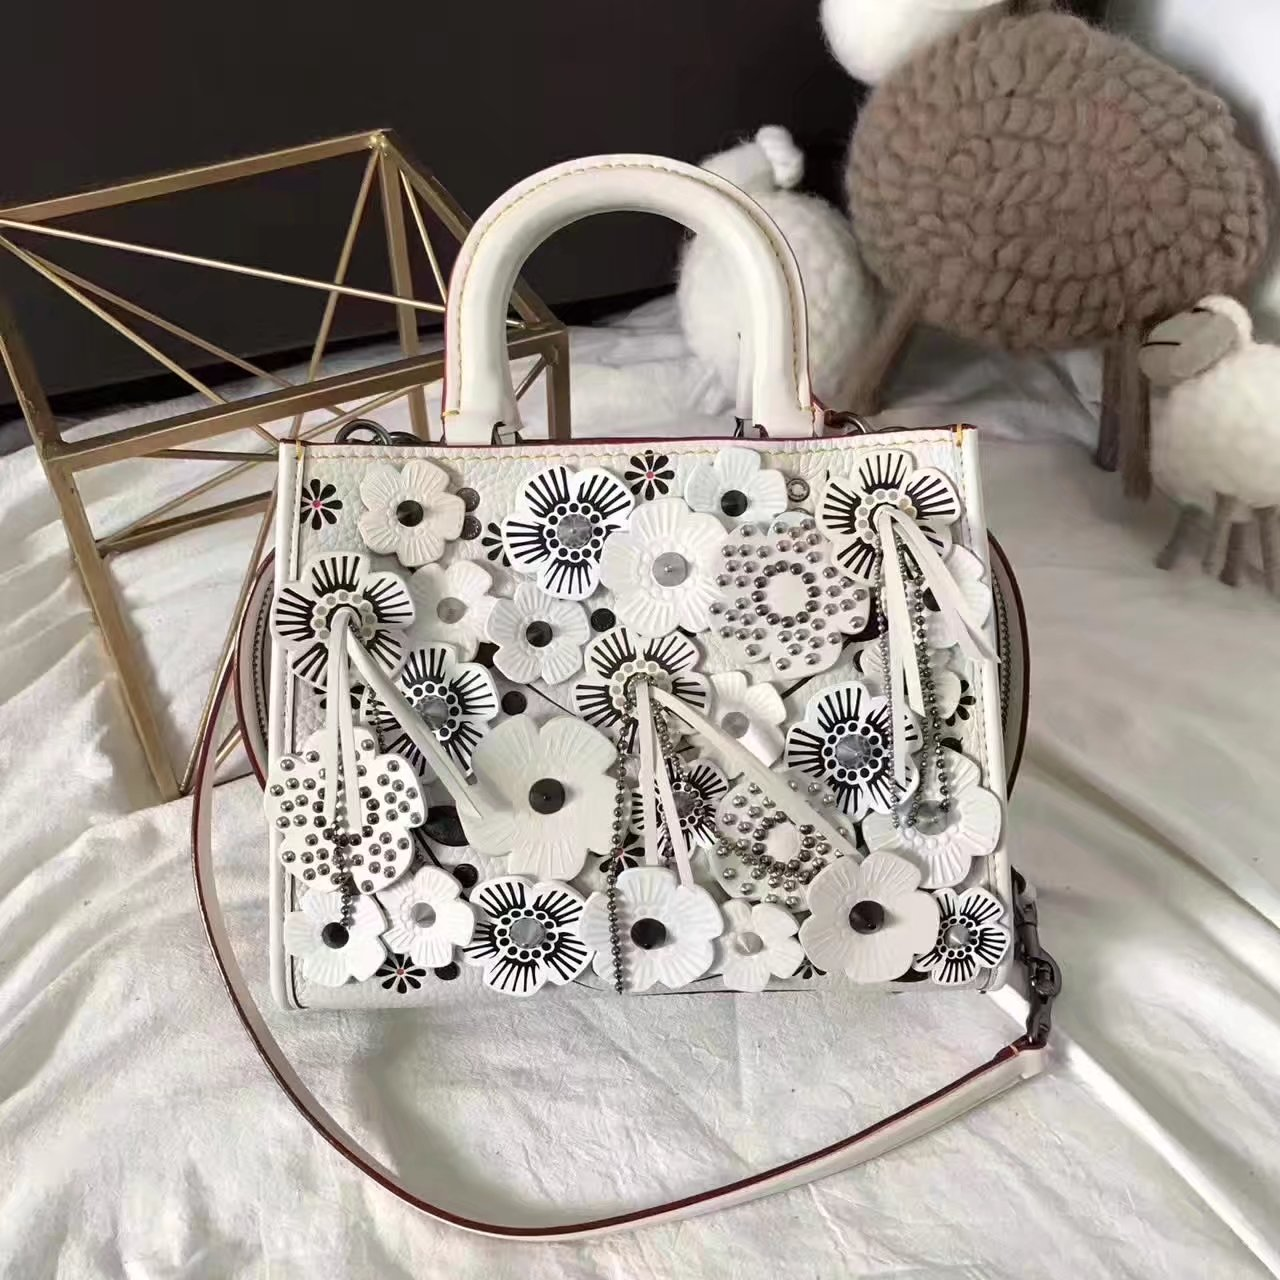 Coach 25 Rogue In Glovetanned White Leather Tote Bag With Exotic Tea Rose